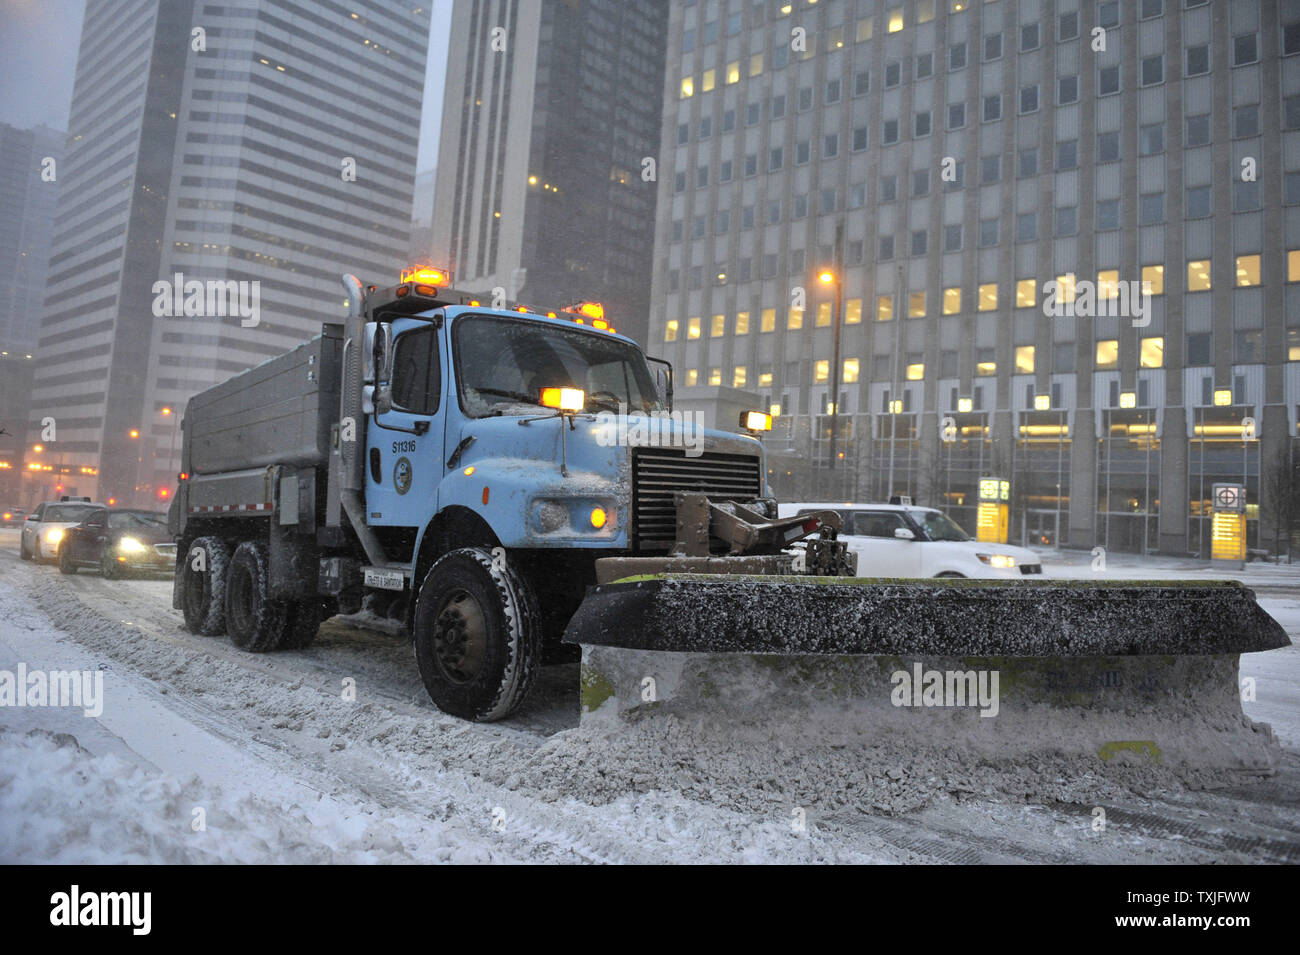 A city snow plow clears streets as a major snow storm hits on February 1, 2011 in Chicago. Up to two feet of snow is expected to fall in the Chicago area as a winter storm created blizzard conditions from the southern Great Plains to the upper midwest on Tuesday.     UPI/Brian Kersey - Stock Image